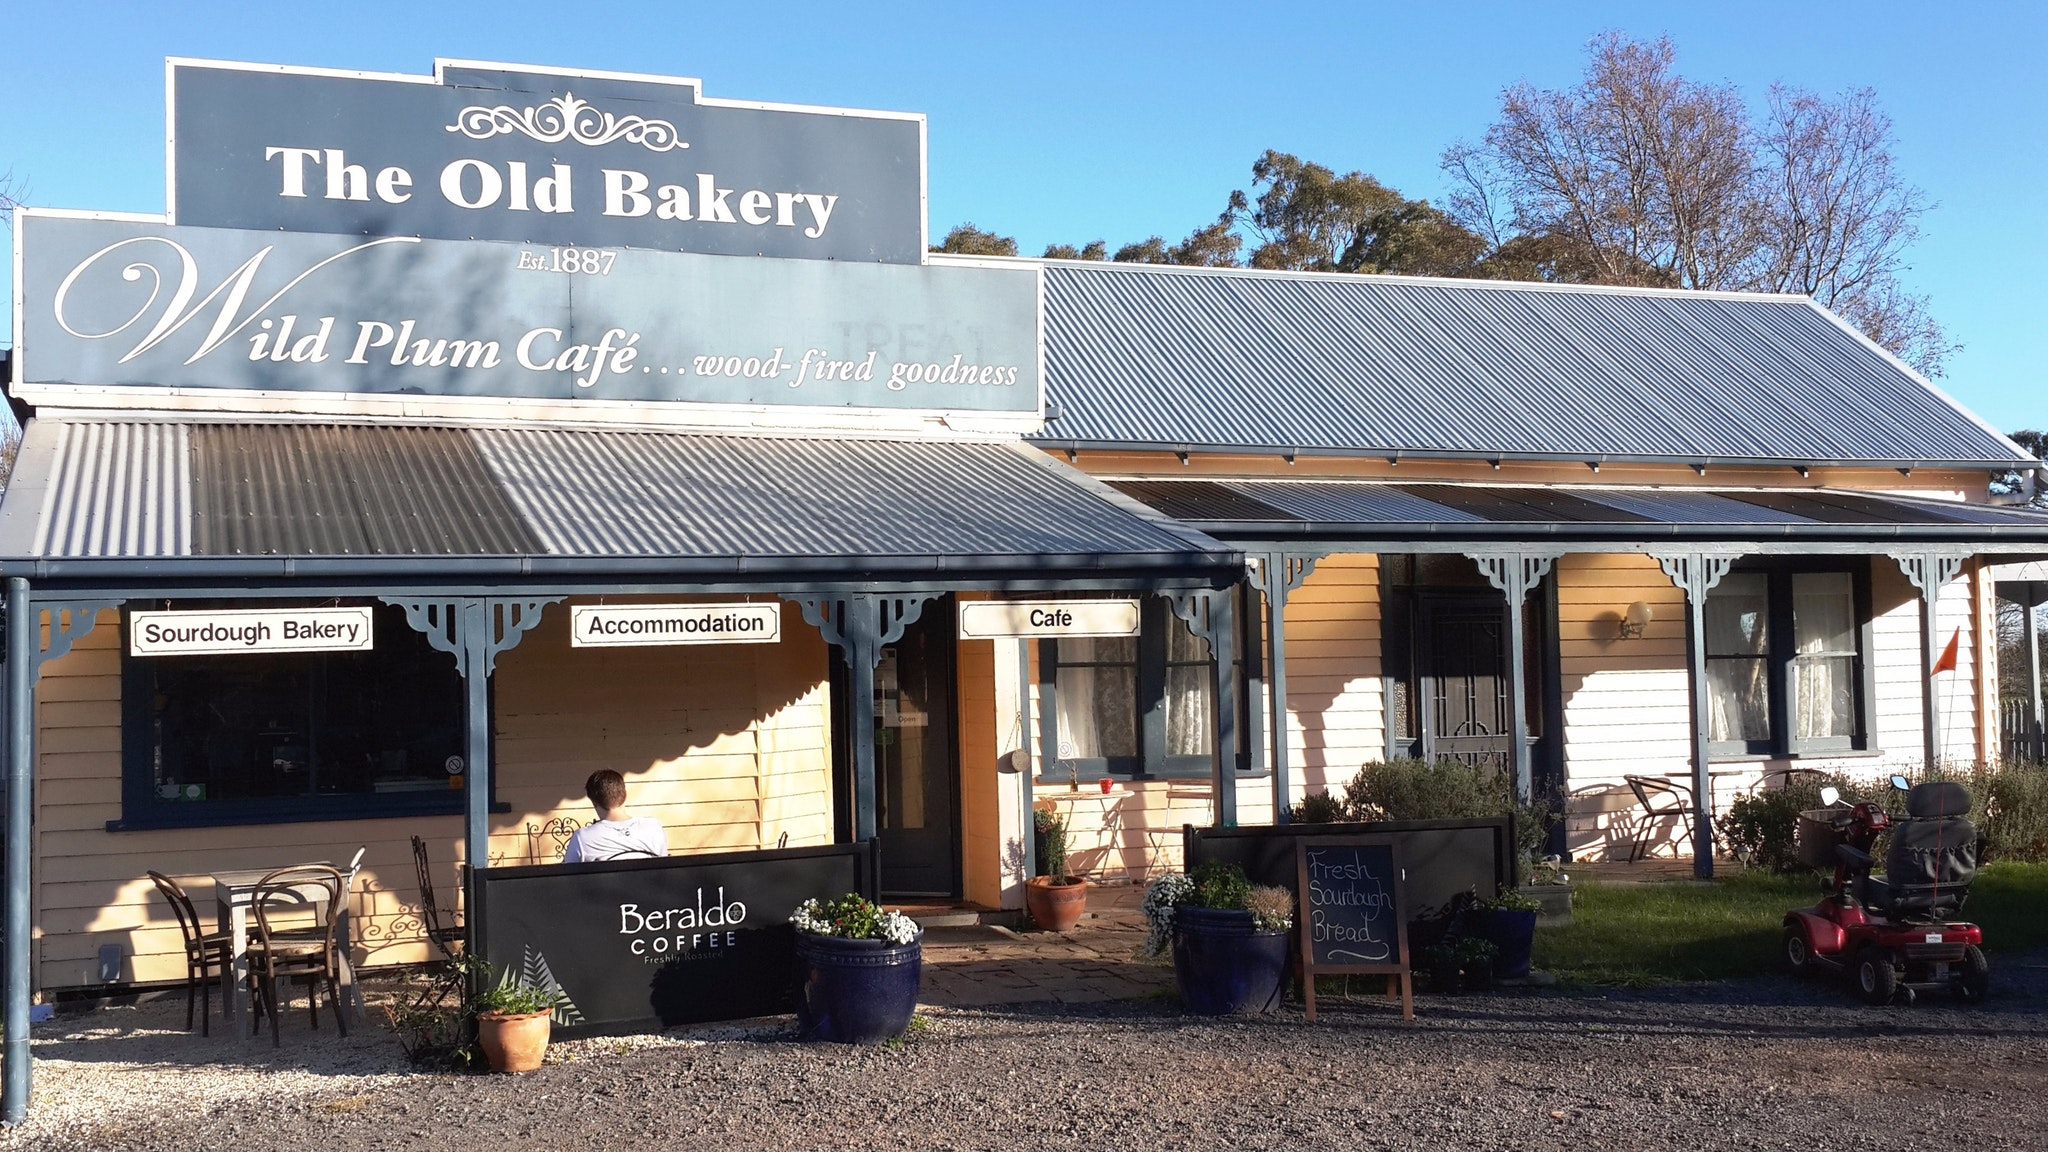 Entrance to the bakery